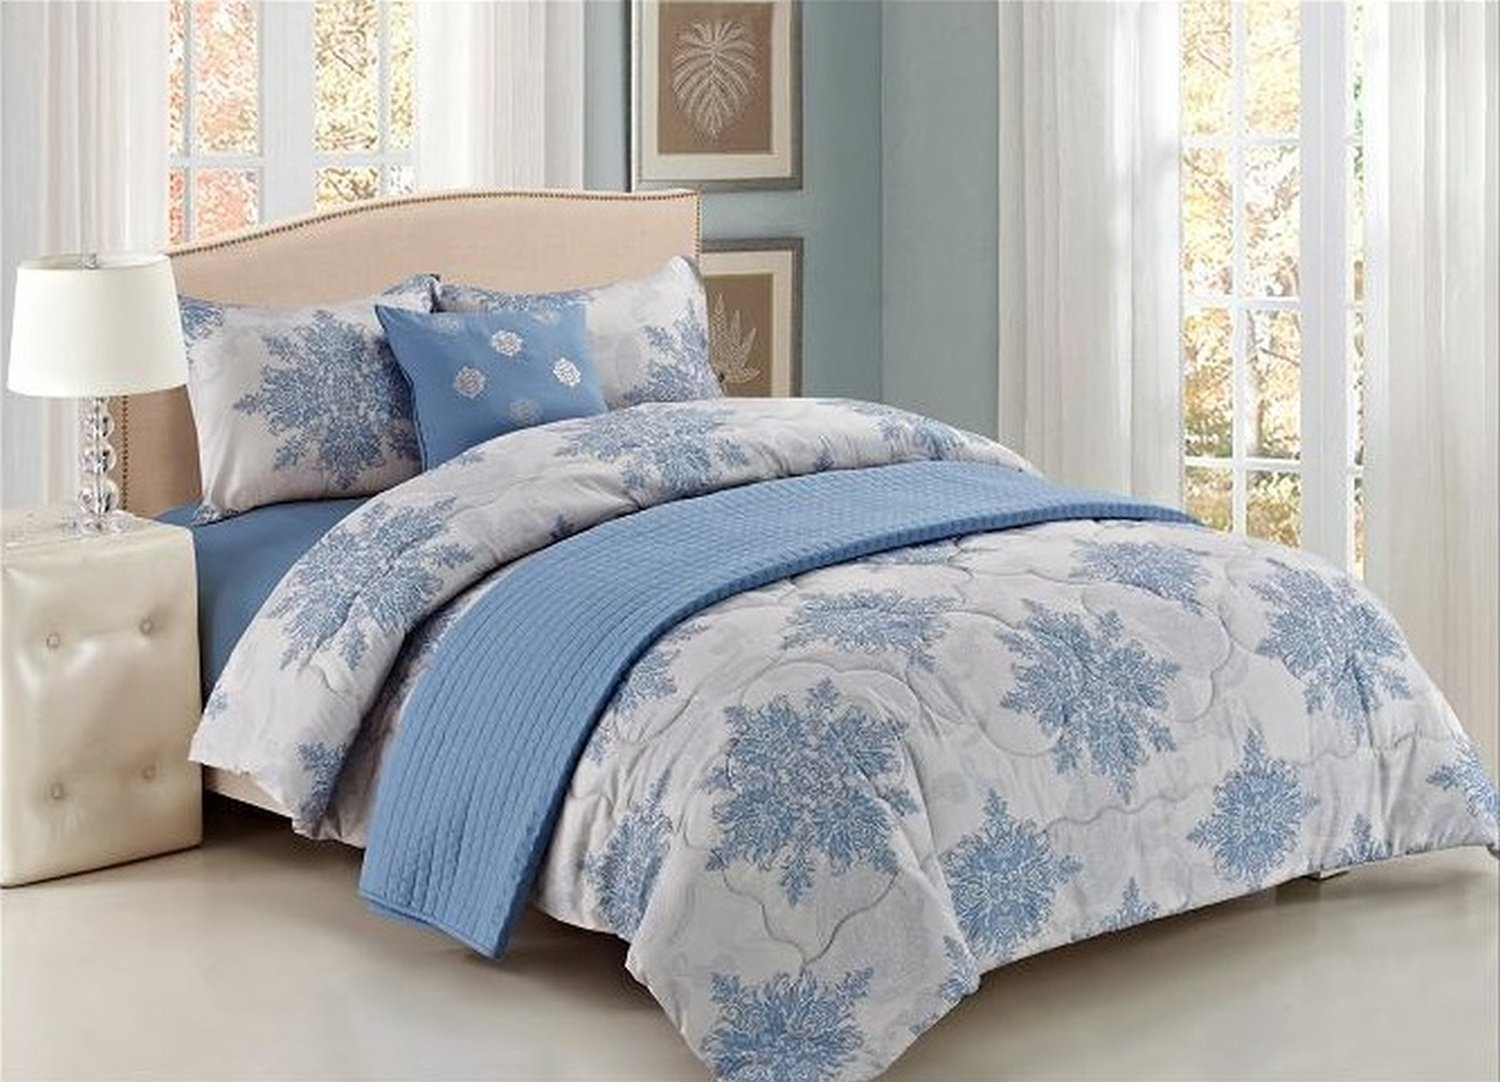 5-Piece Set: Luxury Bedding Ensemble with Comforter and Quilted Bedspread - King Blue